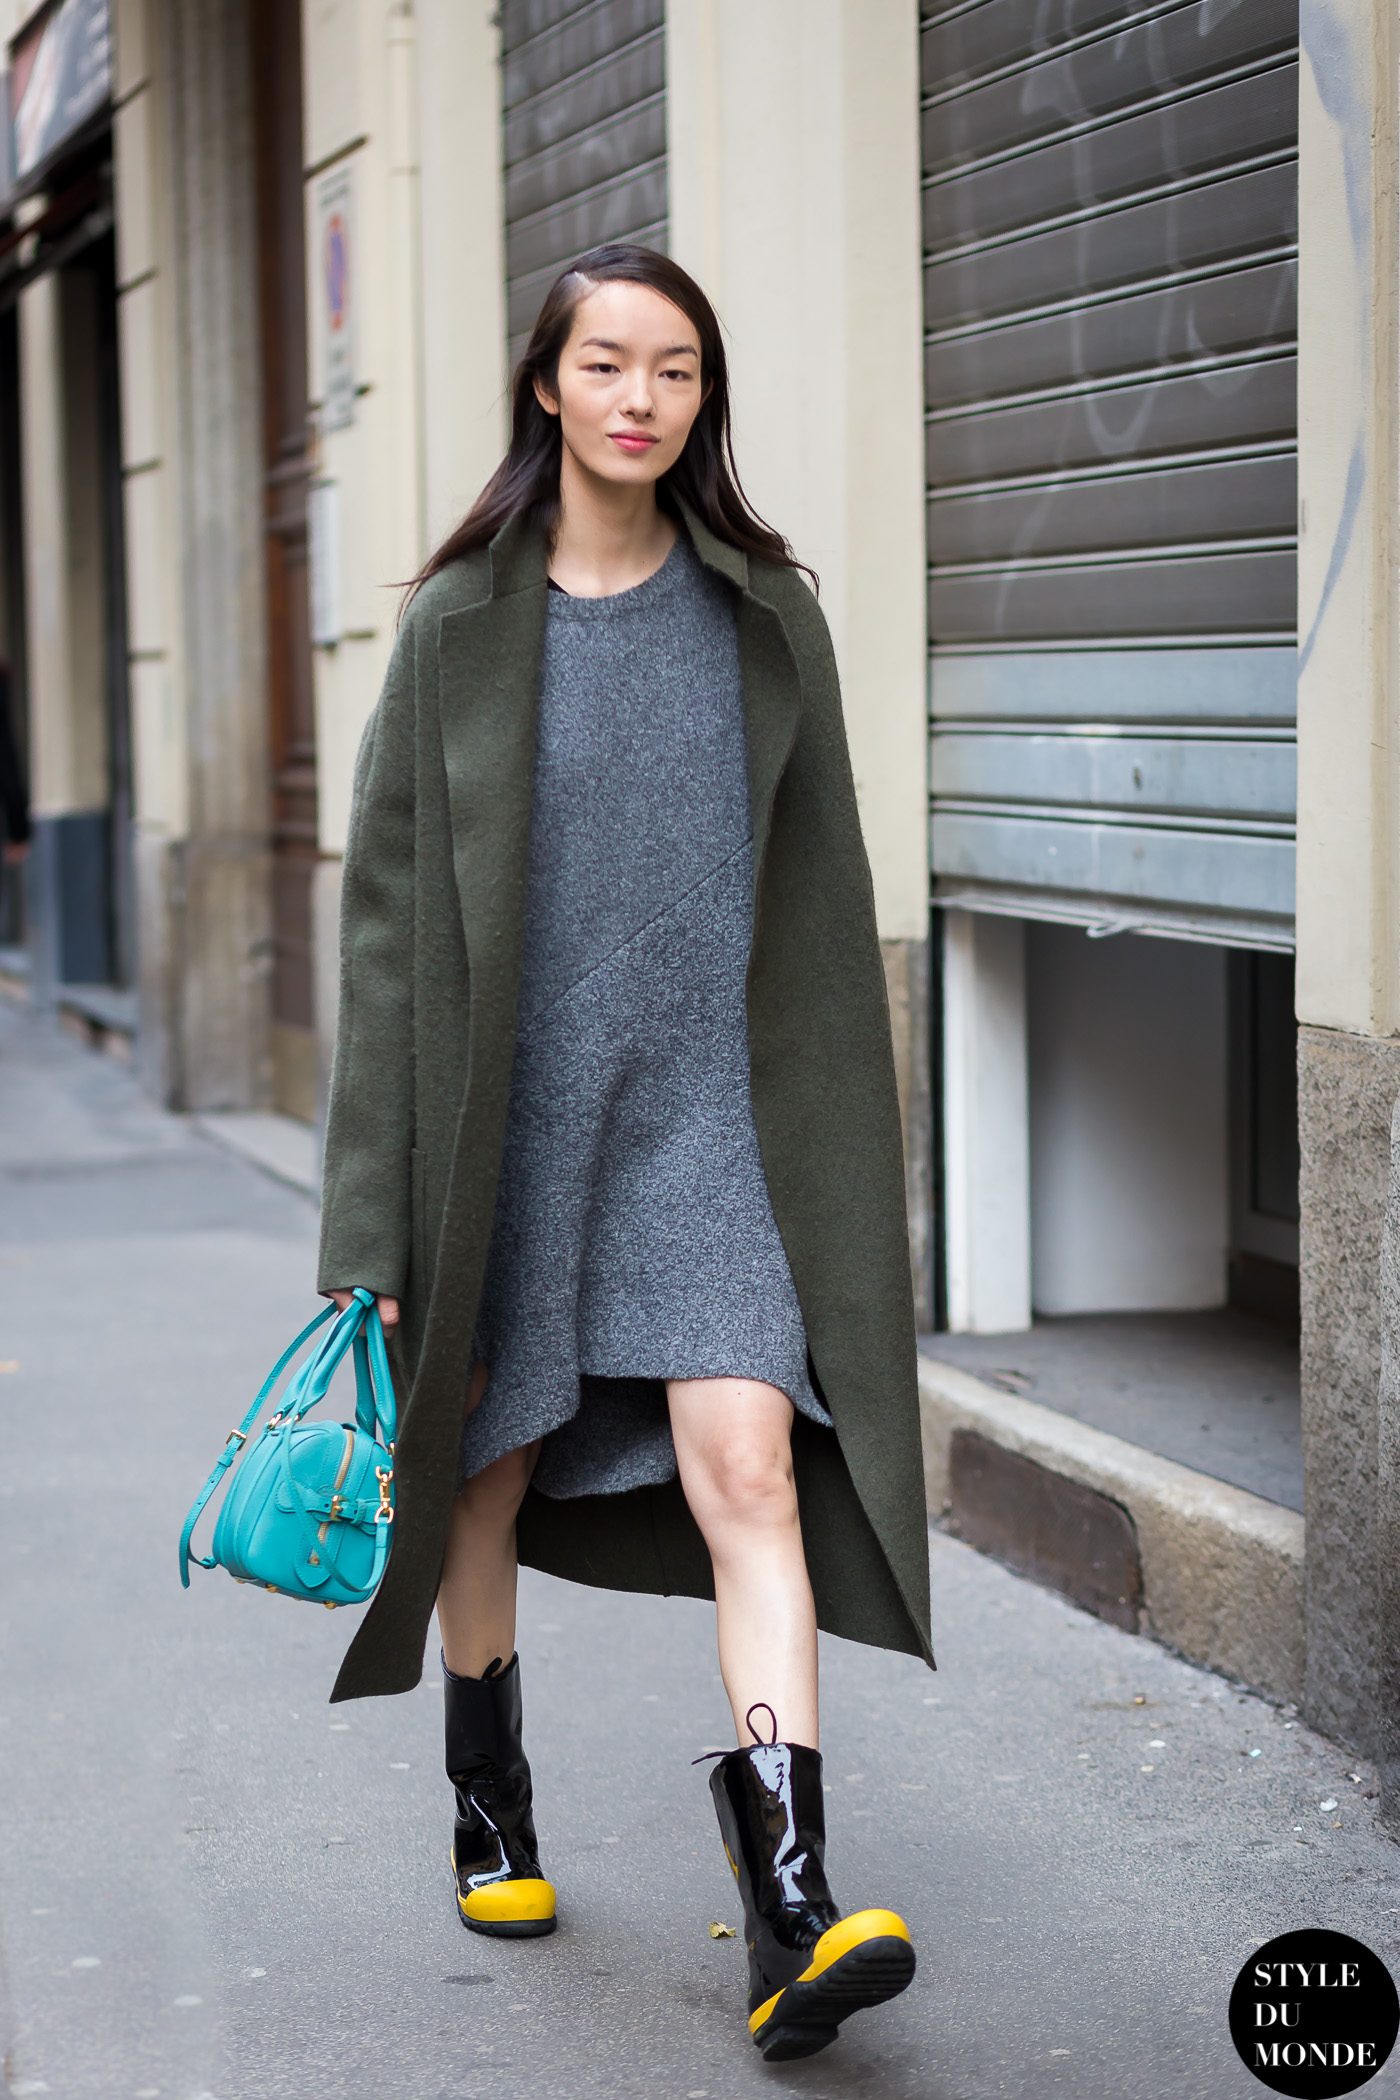 fei-fei-sun-by-styledumonde-street-style-fashion-blog_mg_2269